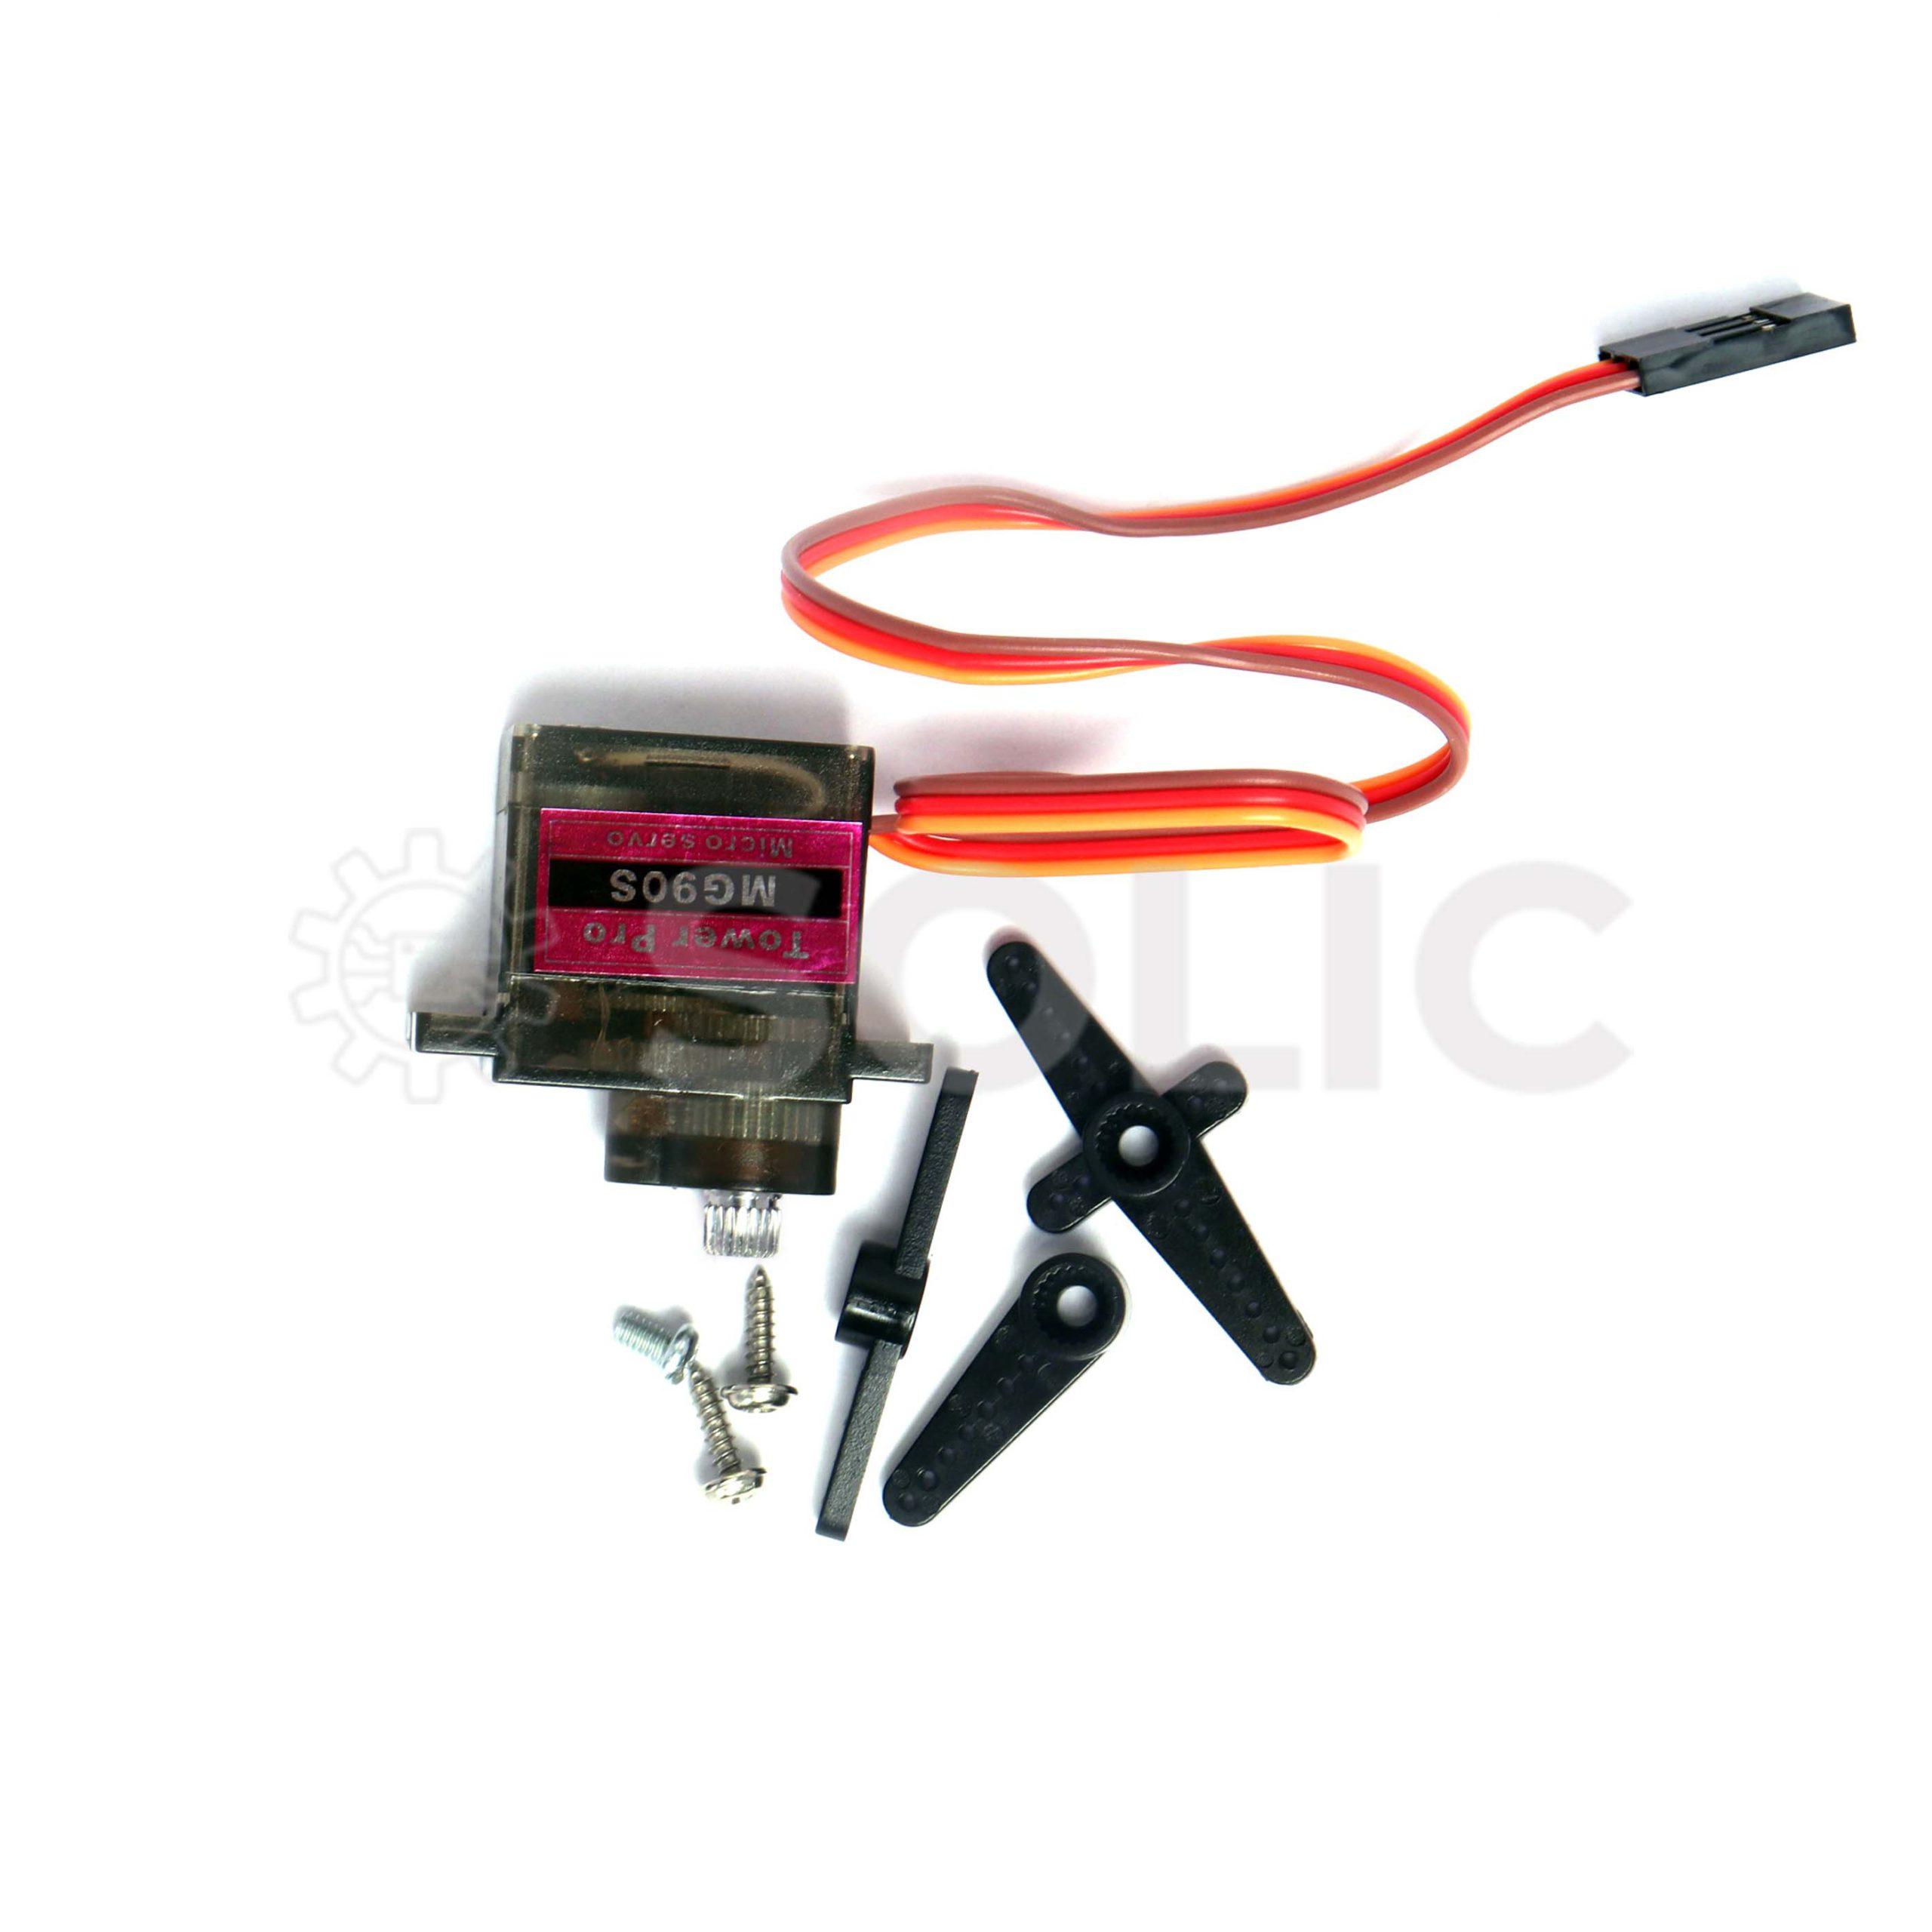 TOWER PRO TYPE compatible  Mg90s 9g metal geared micro servos qty 4 new+fittings